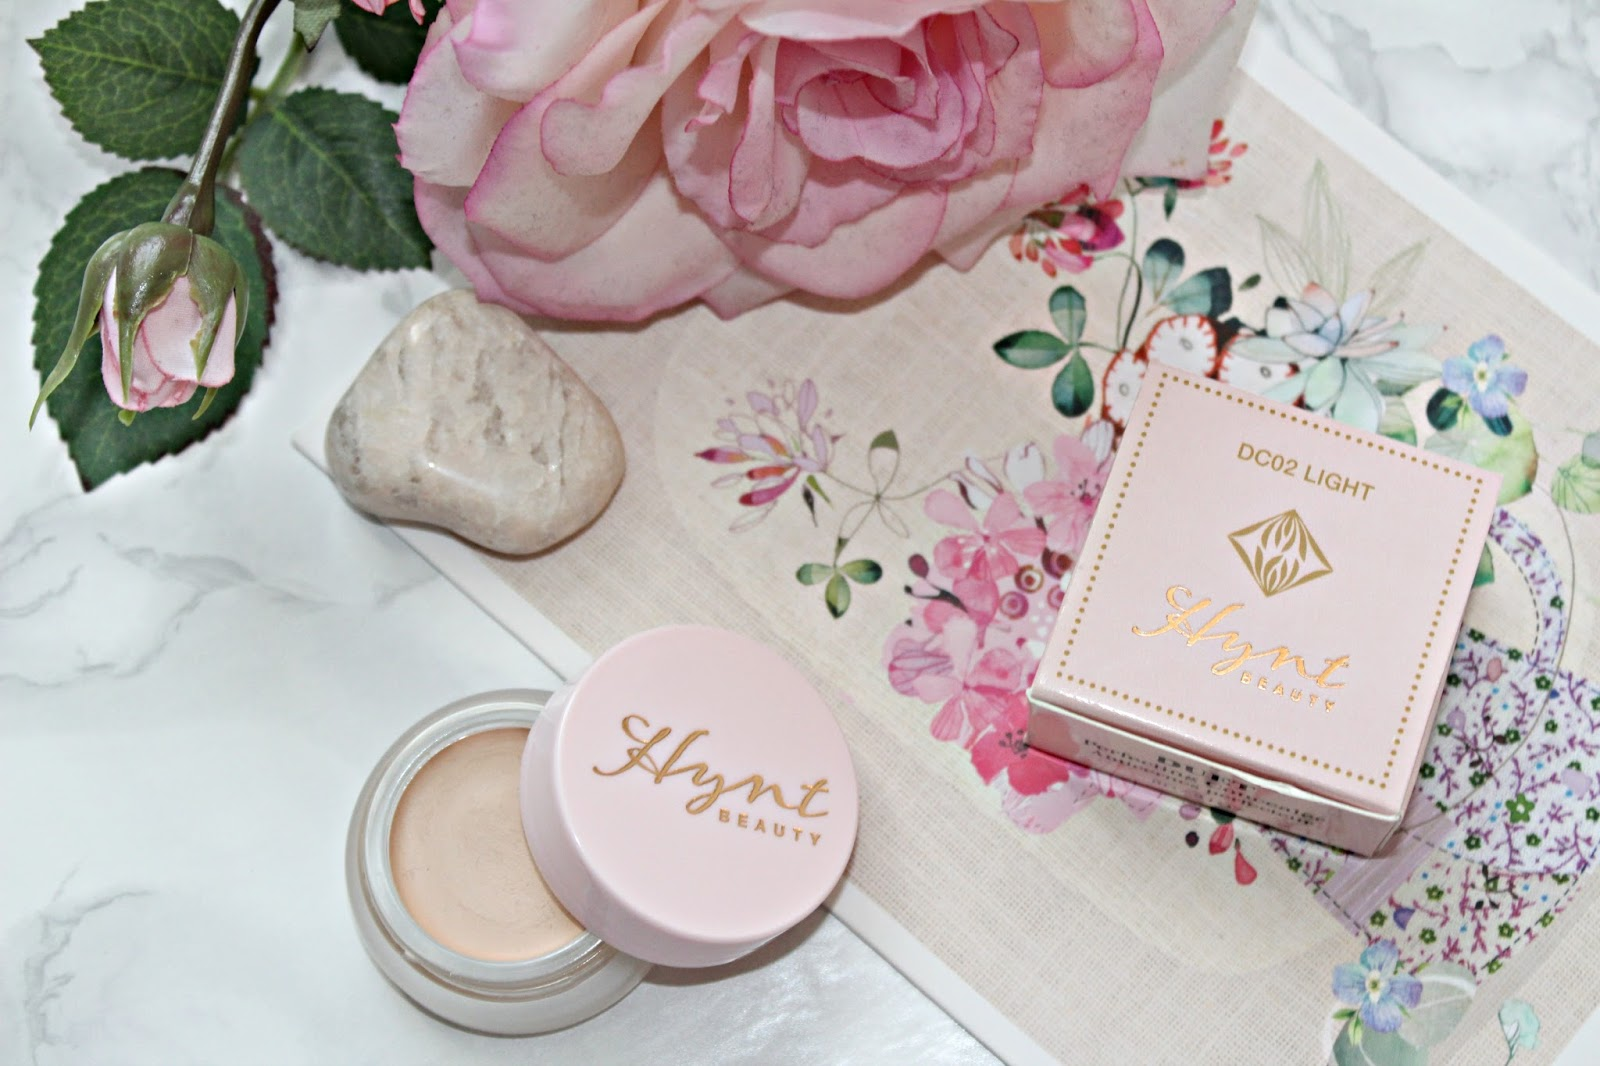 New in hynt beauty duet perfecting concealer review ana goes new in hynt beauty duet perfecting concealer review izmirmasajfo